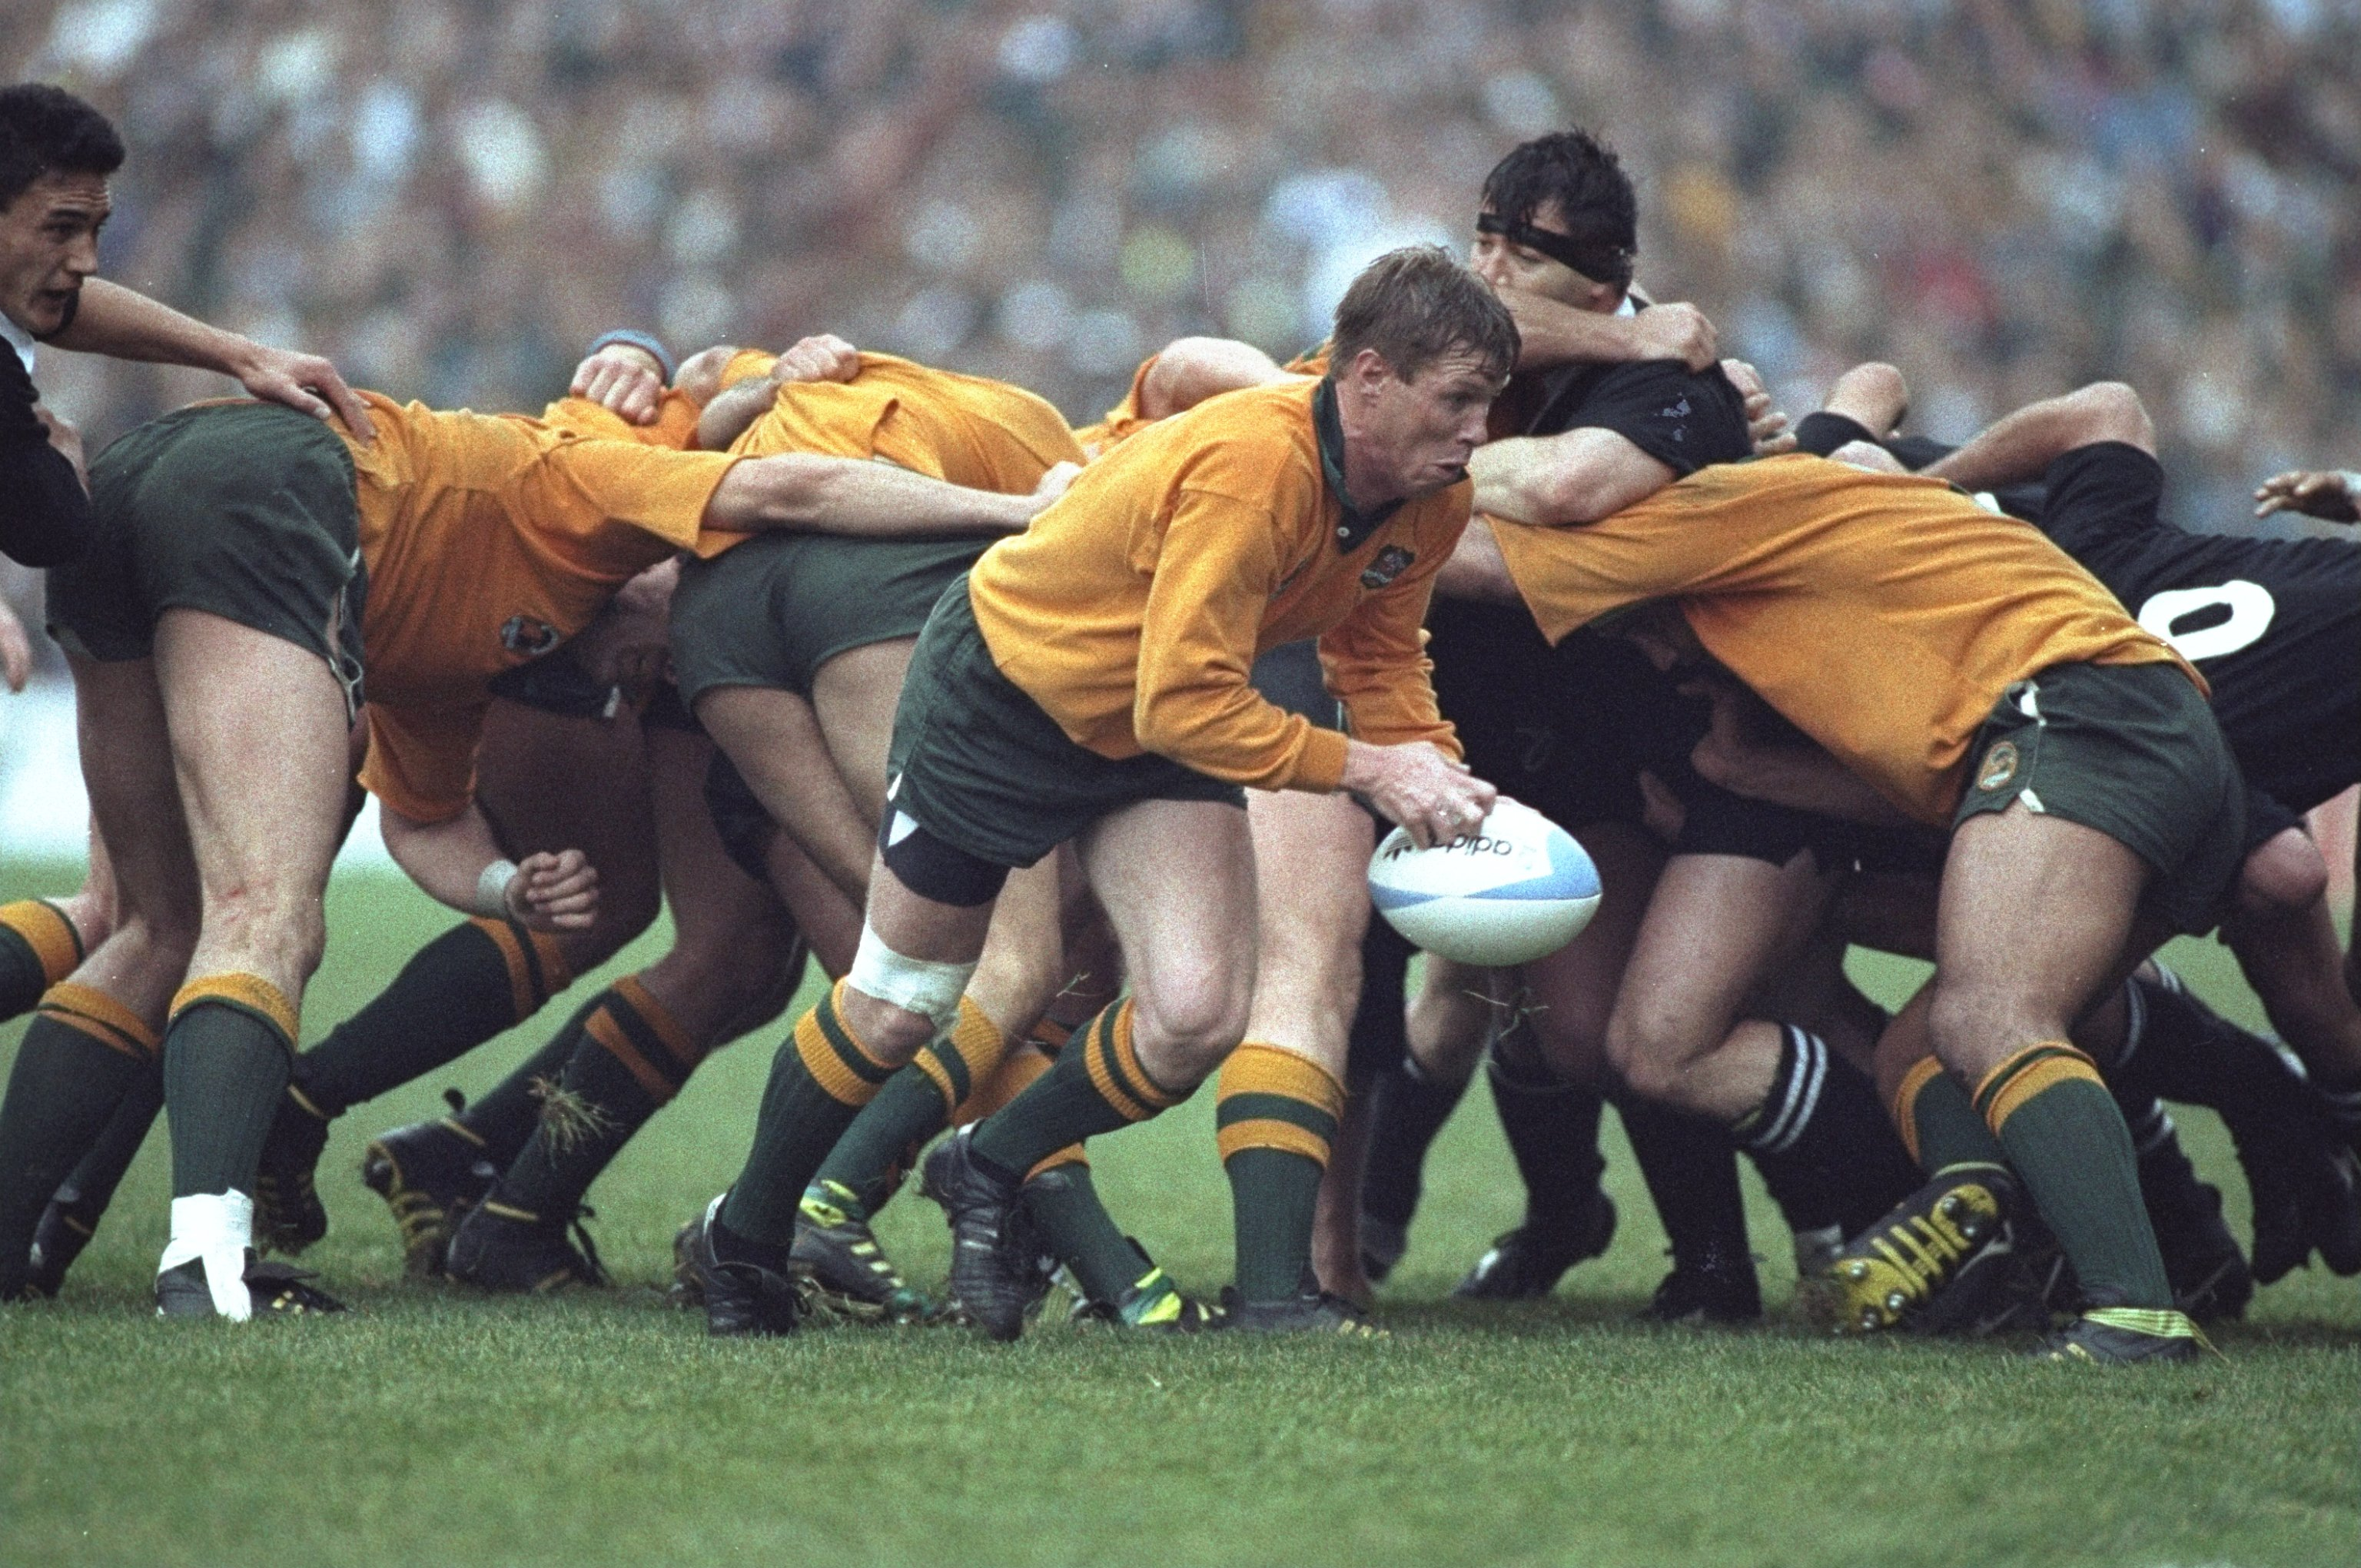 Nick Farr-Jones of Australia with the ball in front of a scrum